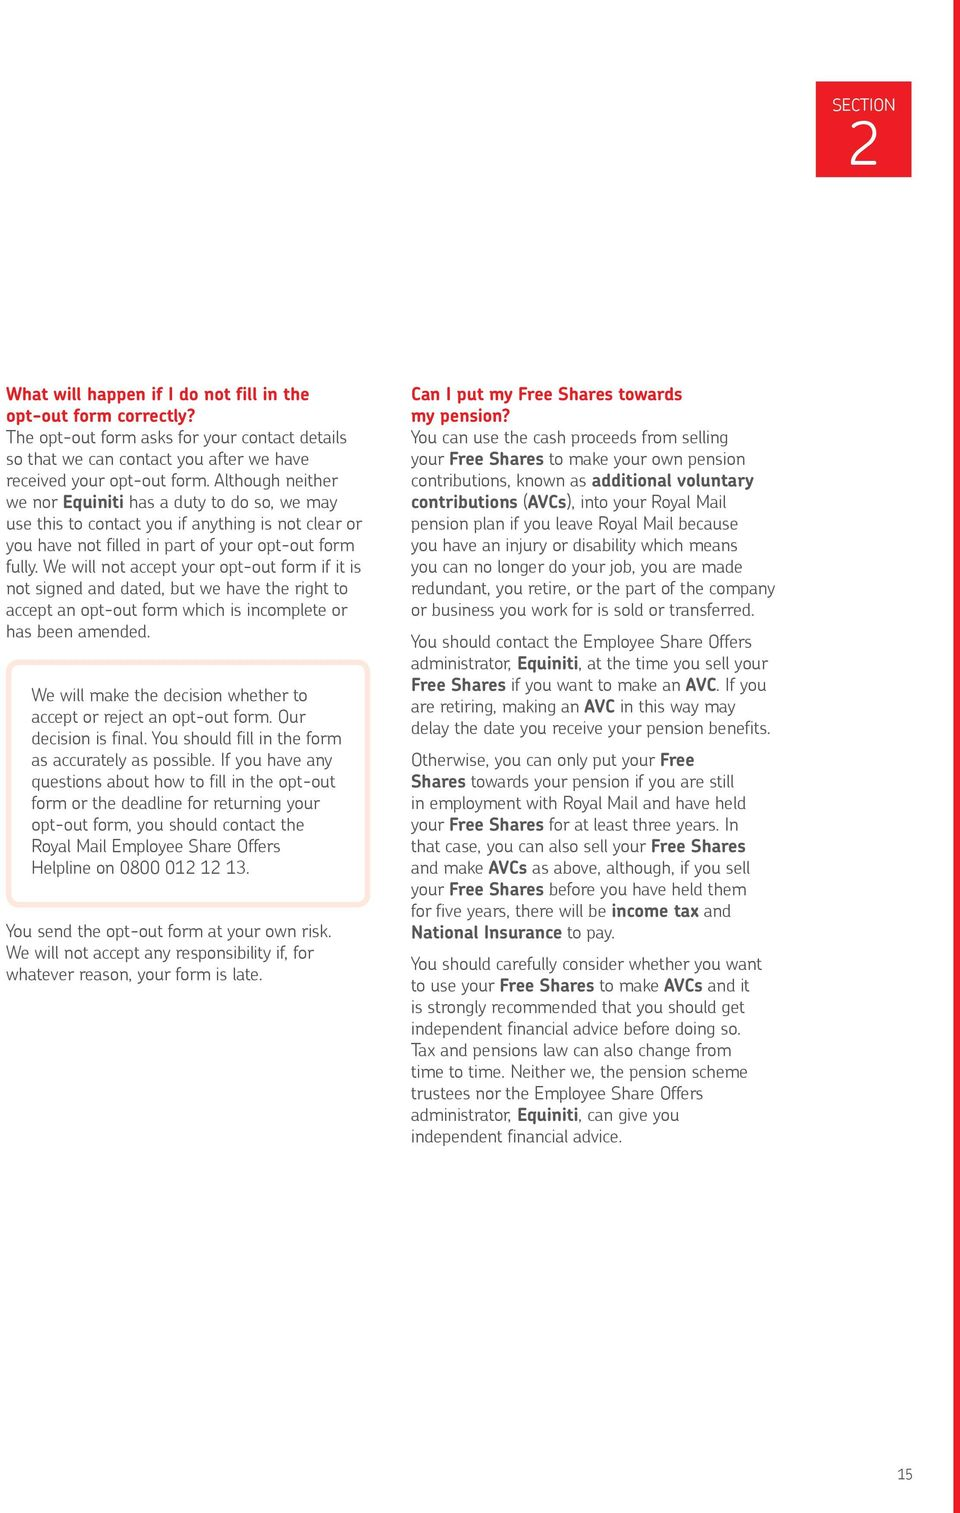 guide to the royal mail employee share offers the shares we will not accept your opt out form if it is not signed and dated